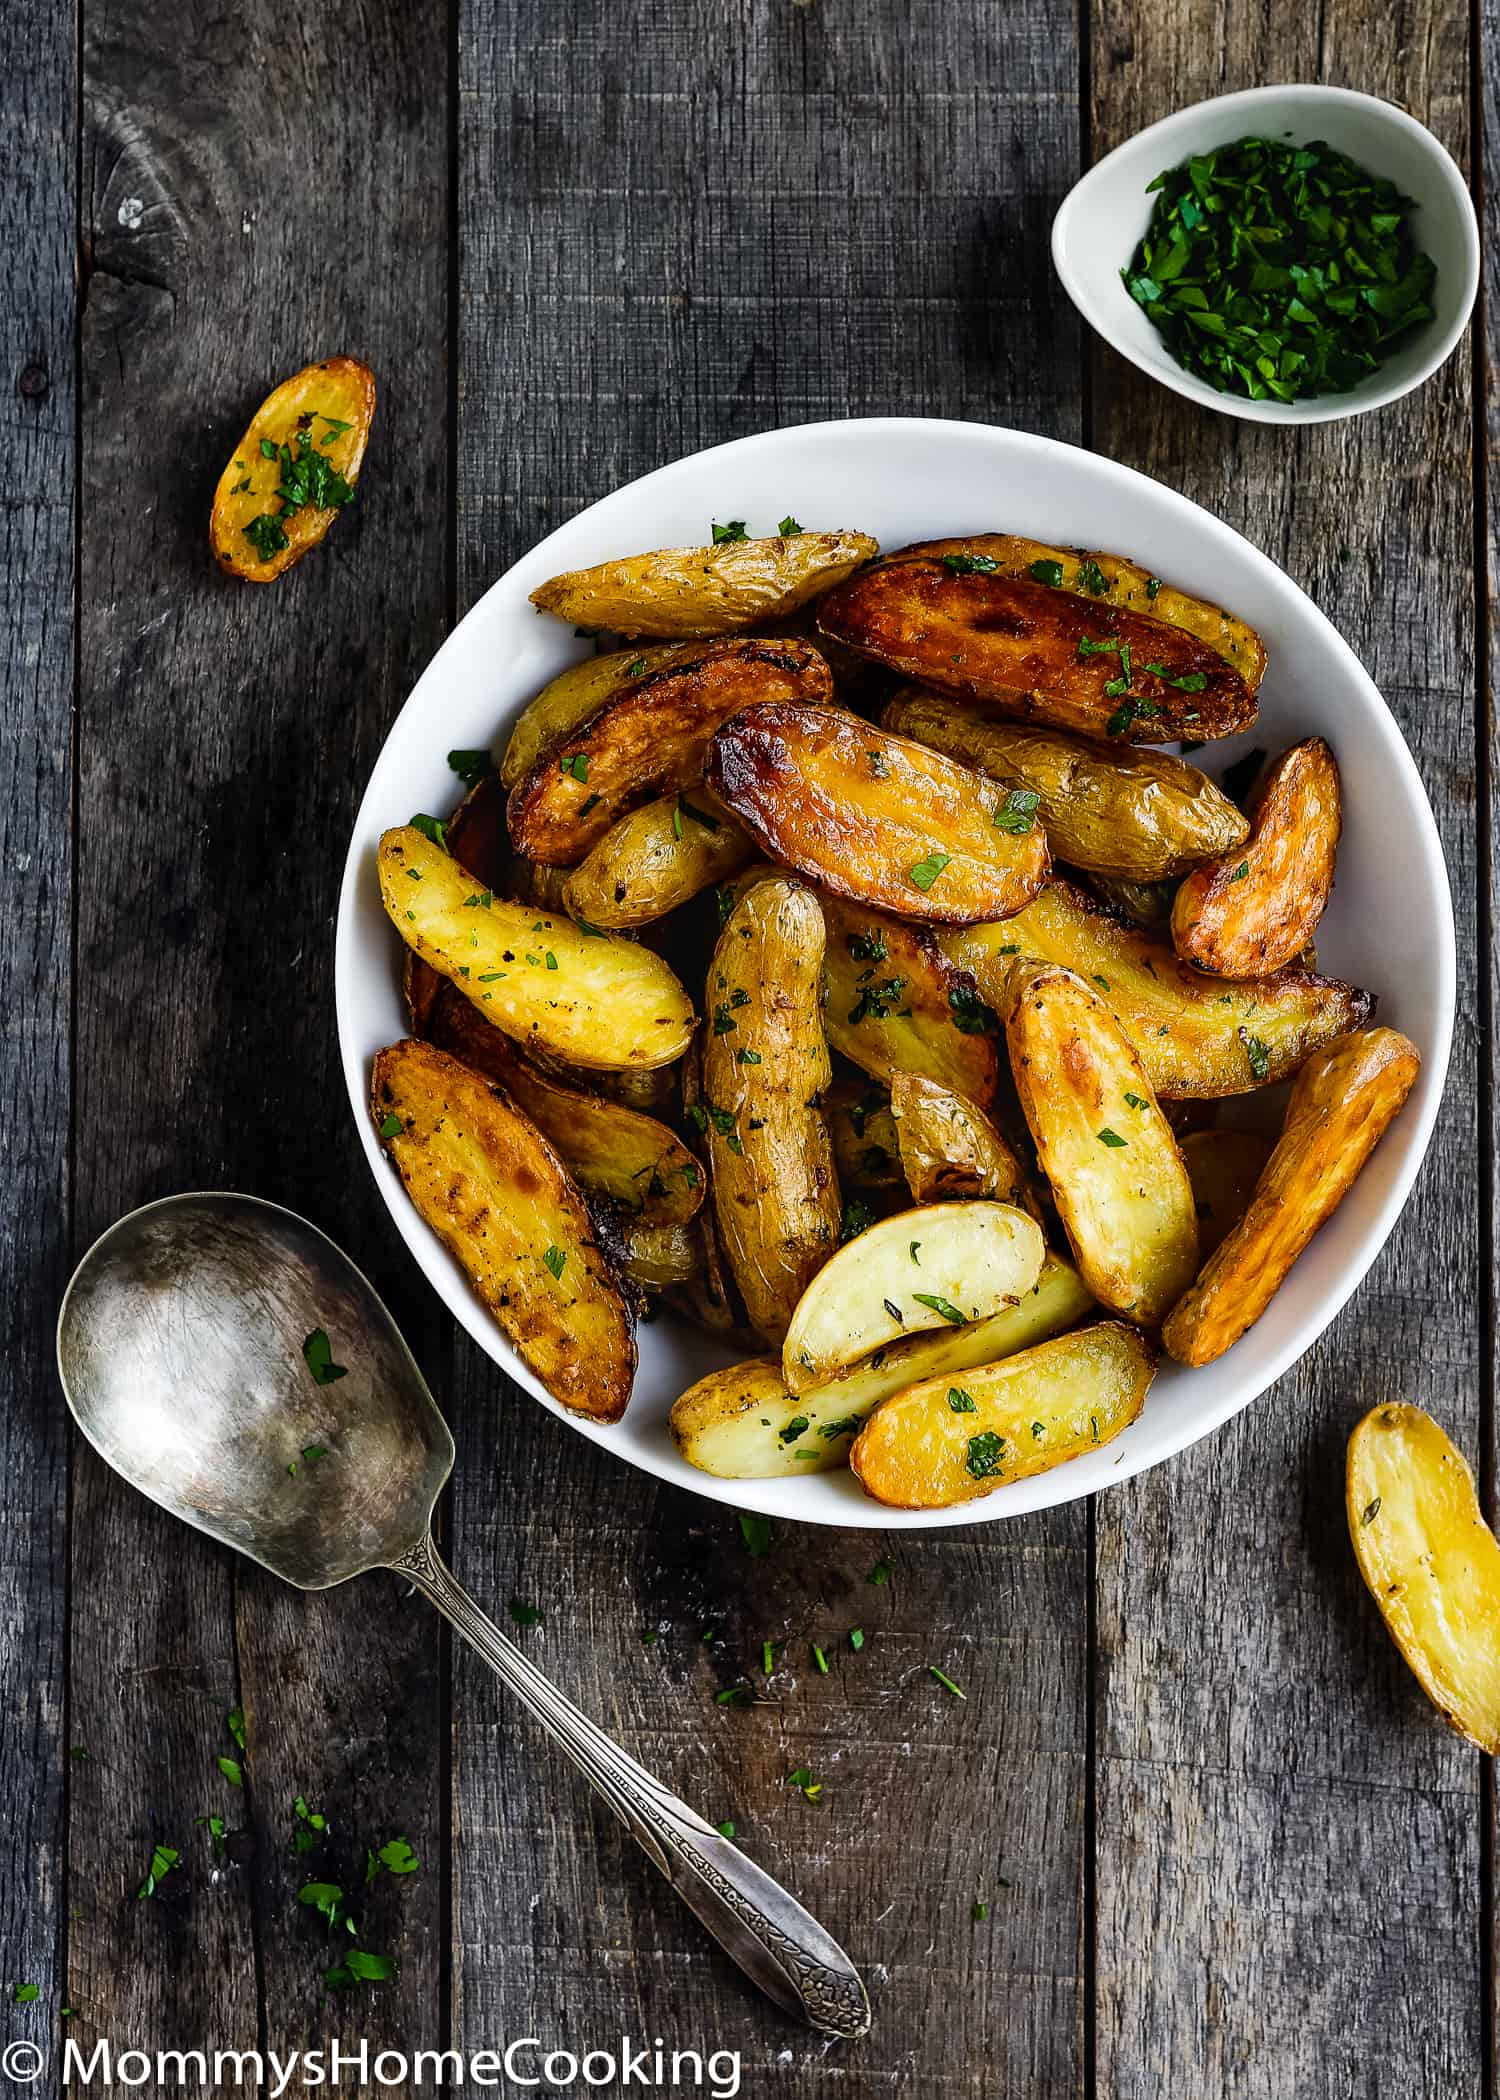 These Easy Garlic Lemon Roasted Potatoes are crispy outside, soft inside, a little salty and lemony. Perfect side dish for just about any entree. https://mommyshomecooking.com